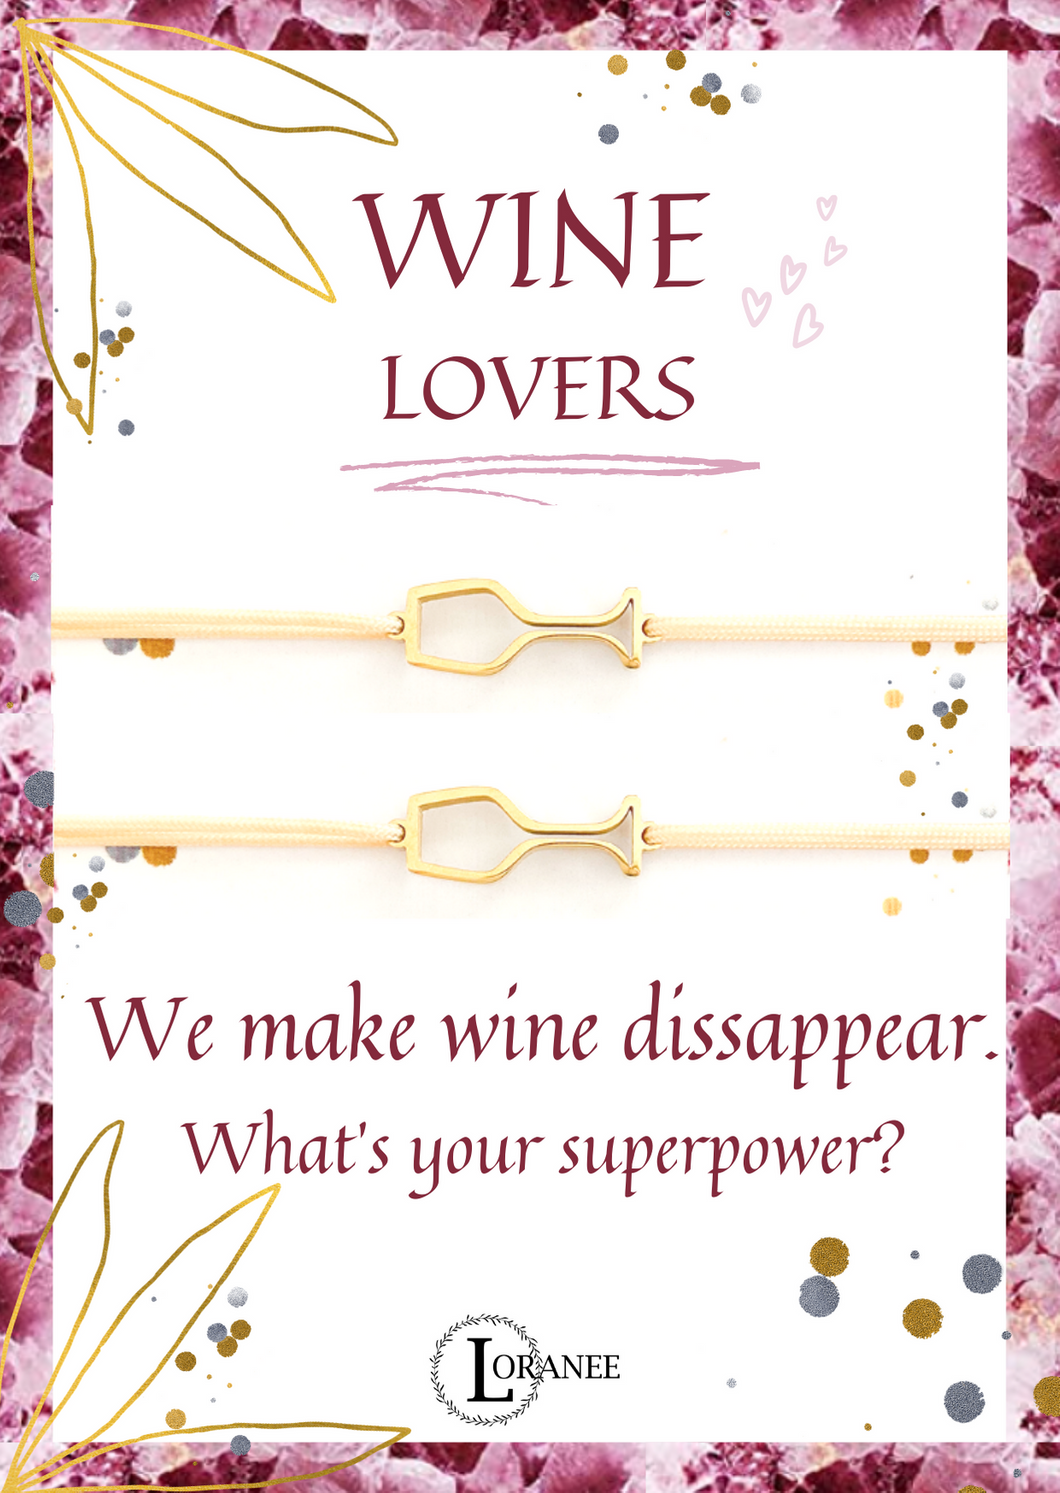 WINE LOVERS Gold 2x